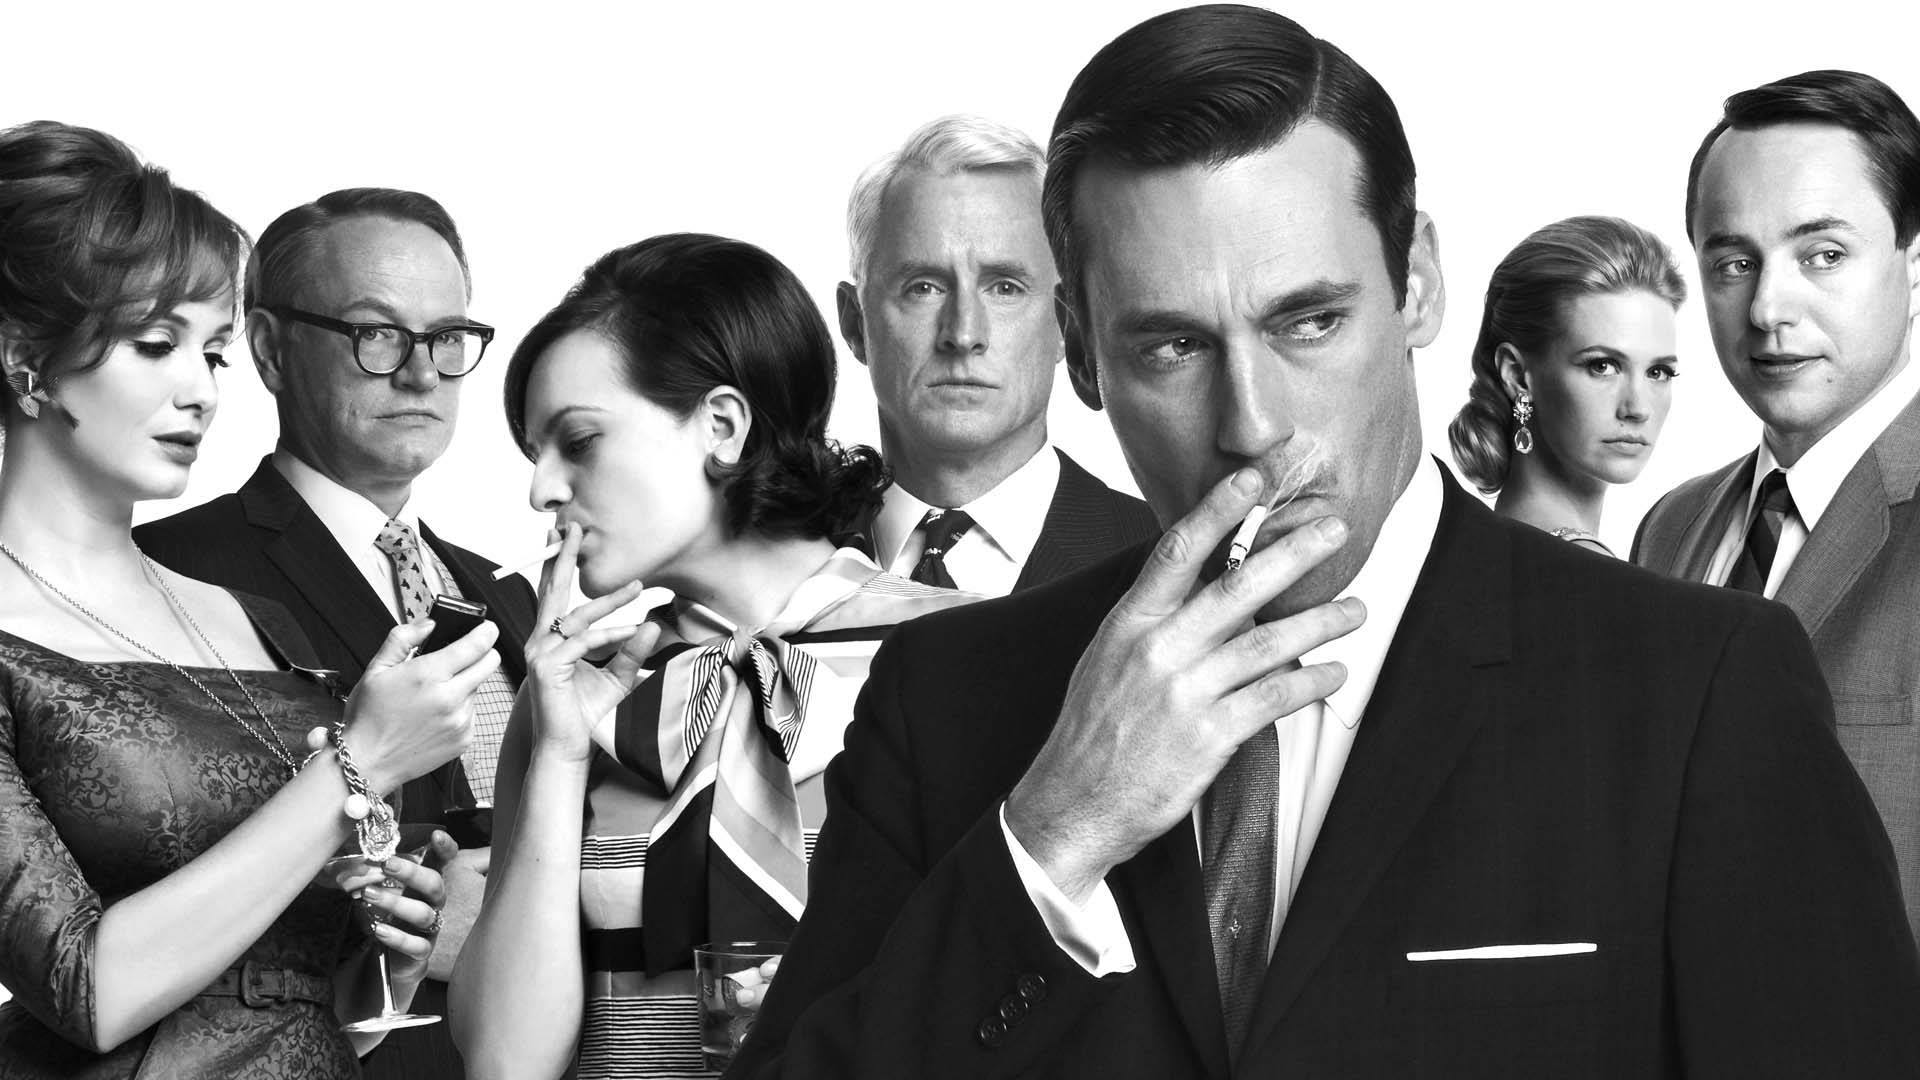 AMC - Mad Men Graphic.jpg